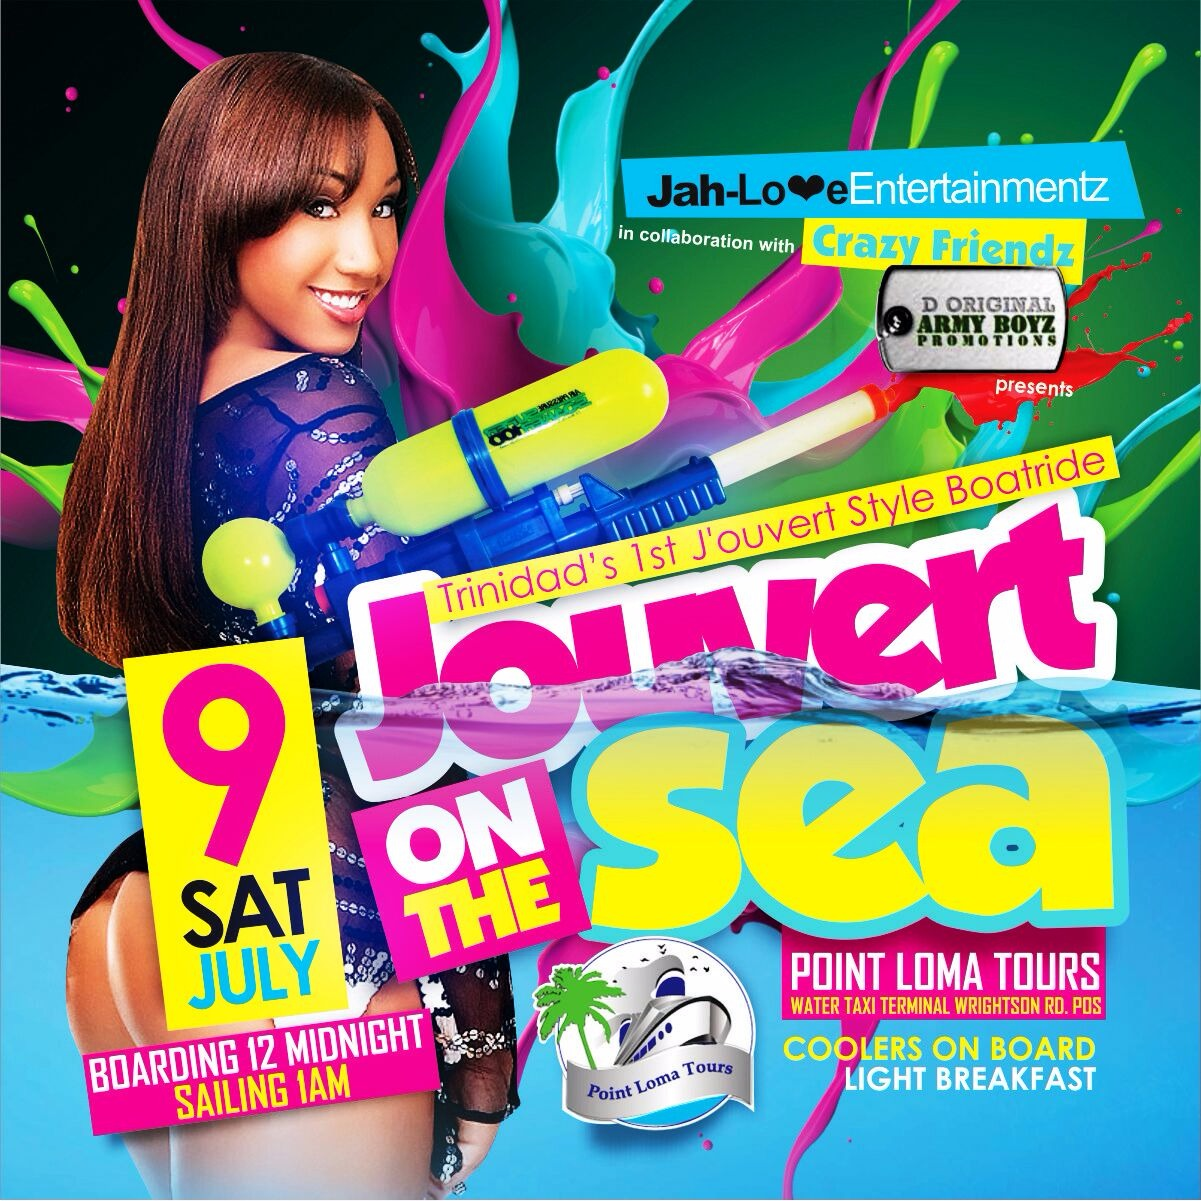 J'ouvert on the Seas